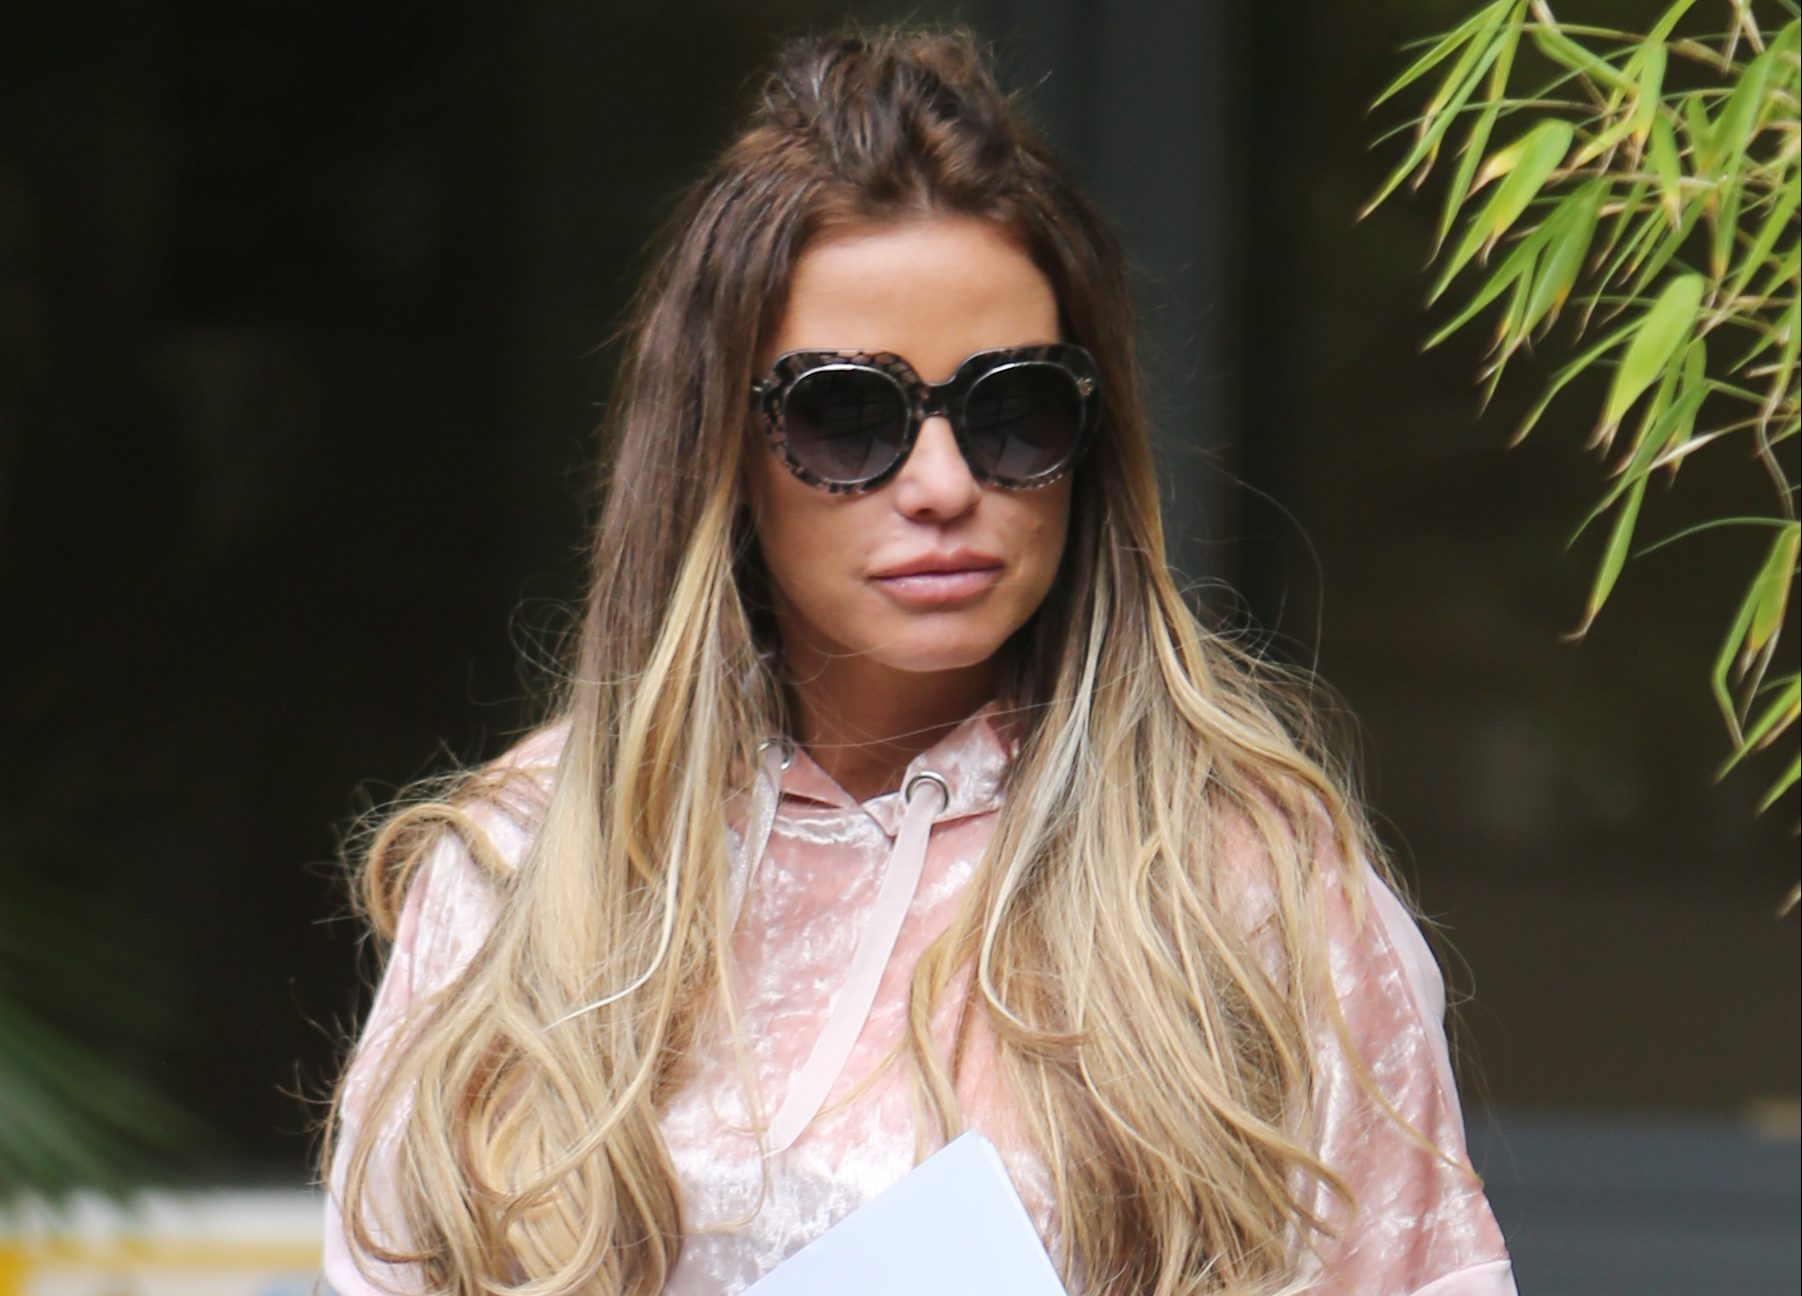 Katie Price finds adorable video of Princess on her phone and shares it with her fans